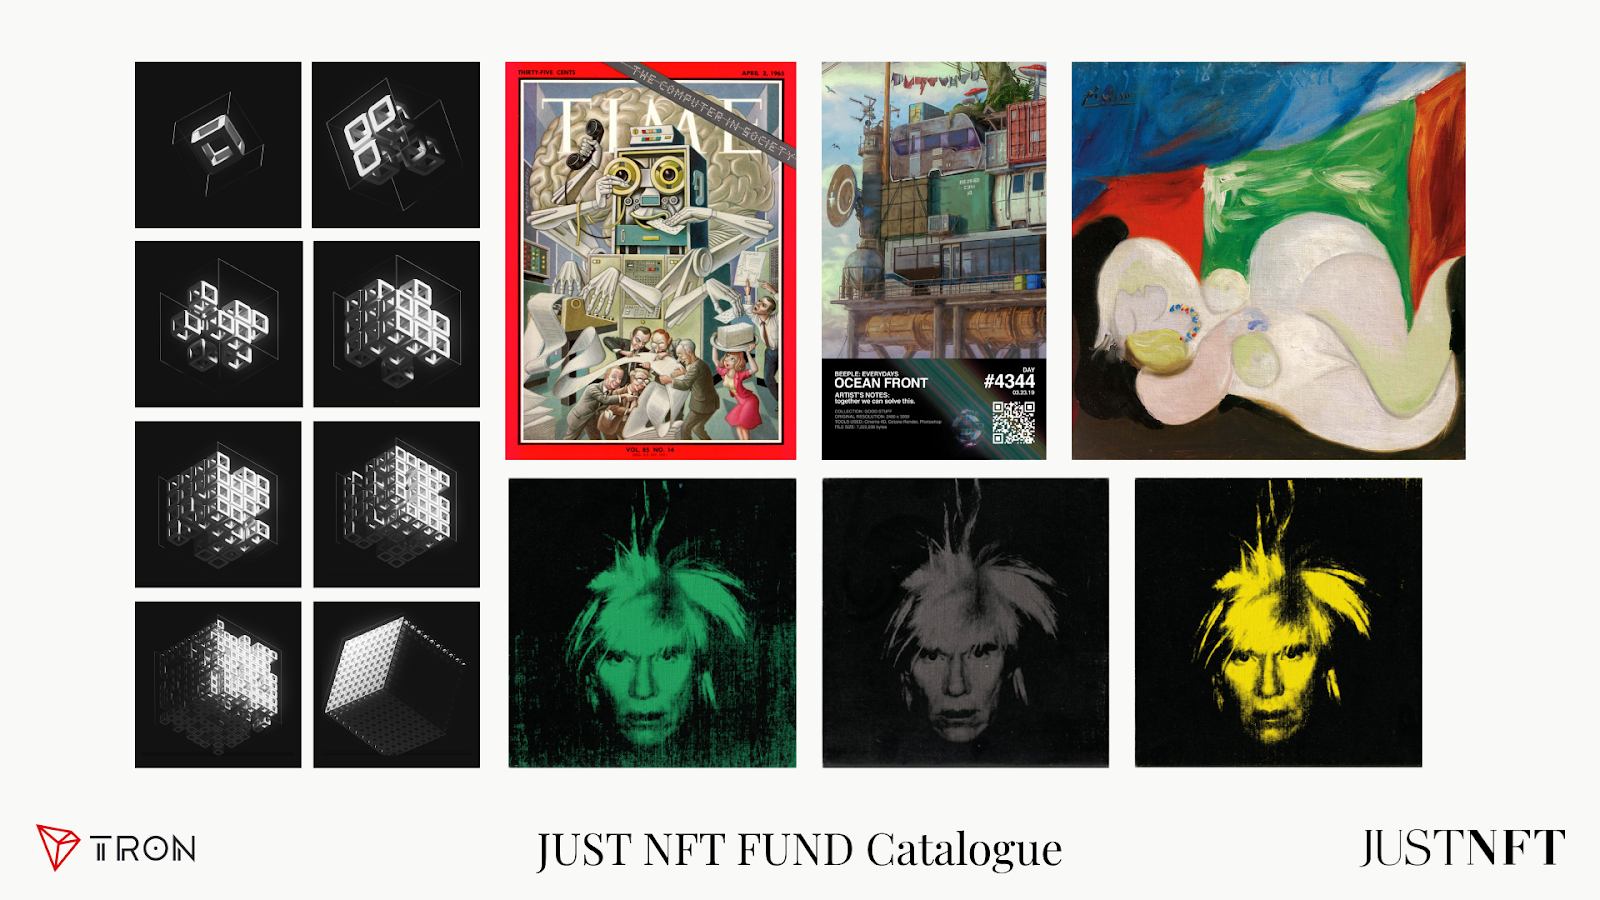 JUST NFT Fund Launches The World's First Picasso NFT To Help Traditional  Art Break Into the Digital World - Press Release - Digital Journal